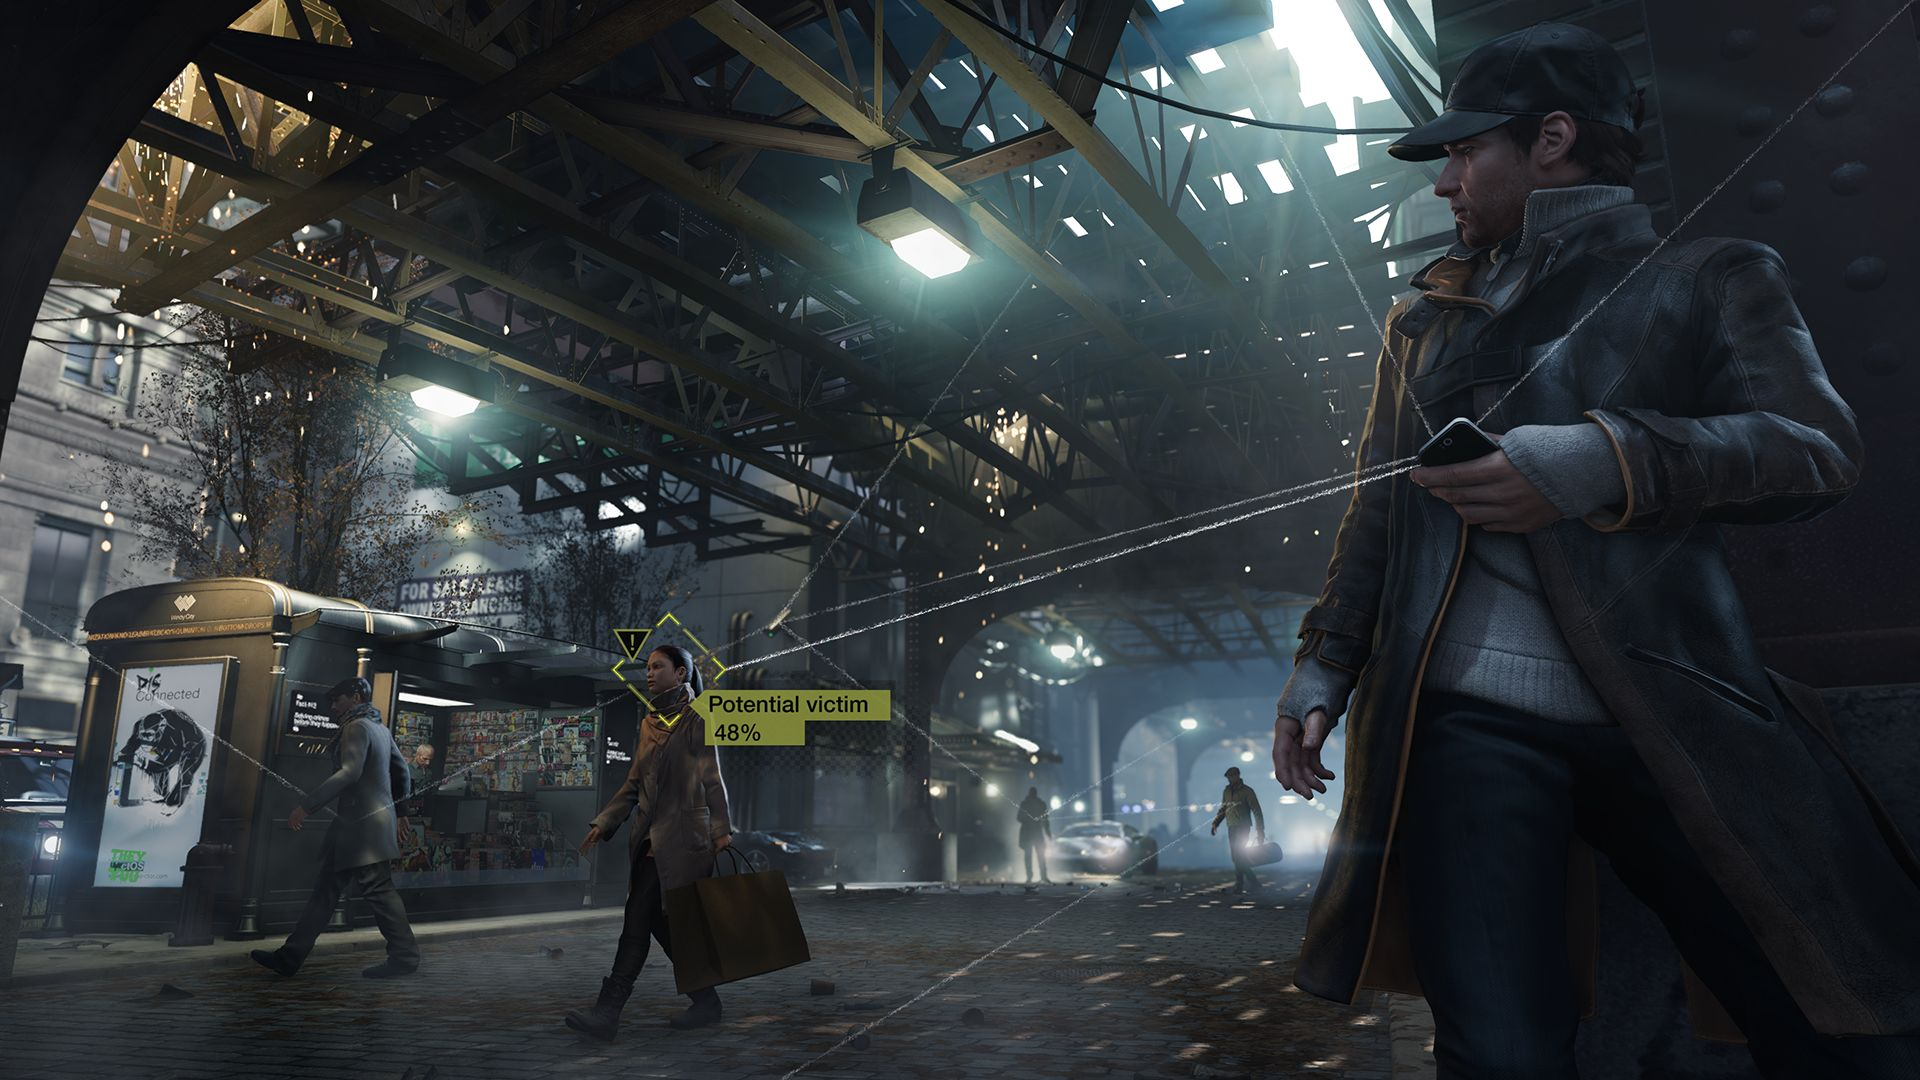 Will Watch Dogs be Ubisoft's last big budget title for Wii U